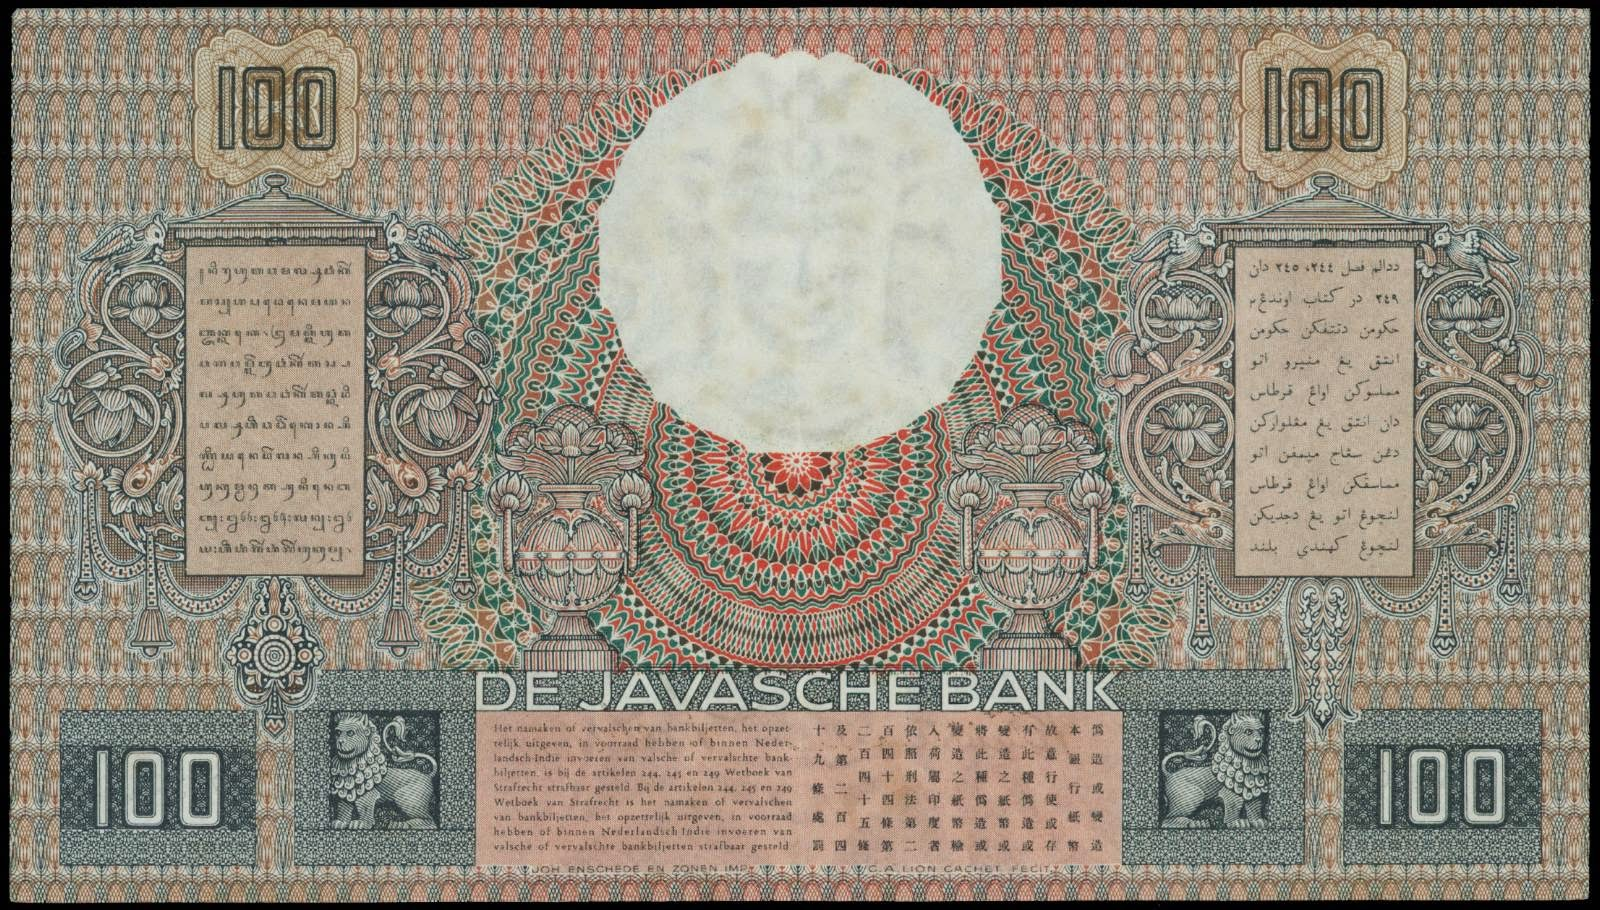 Netherlands Indies paper money 100 Gulden note 1938 Javasche Bank